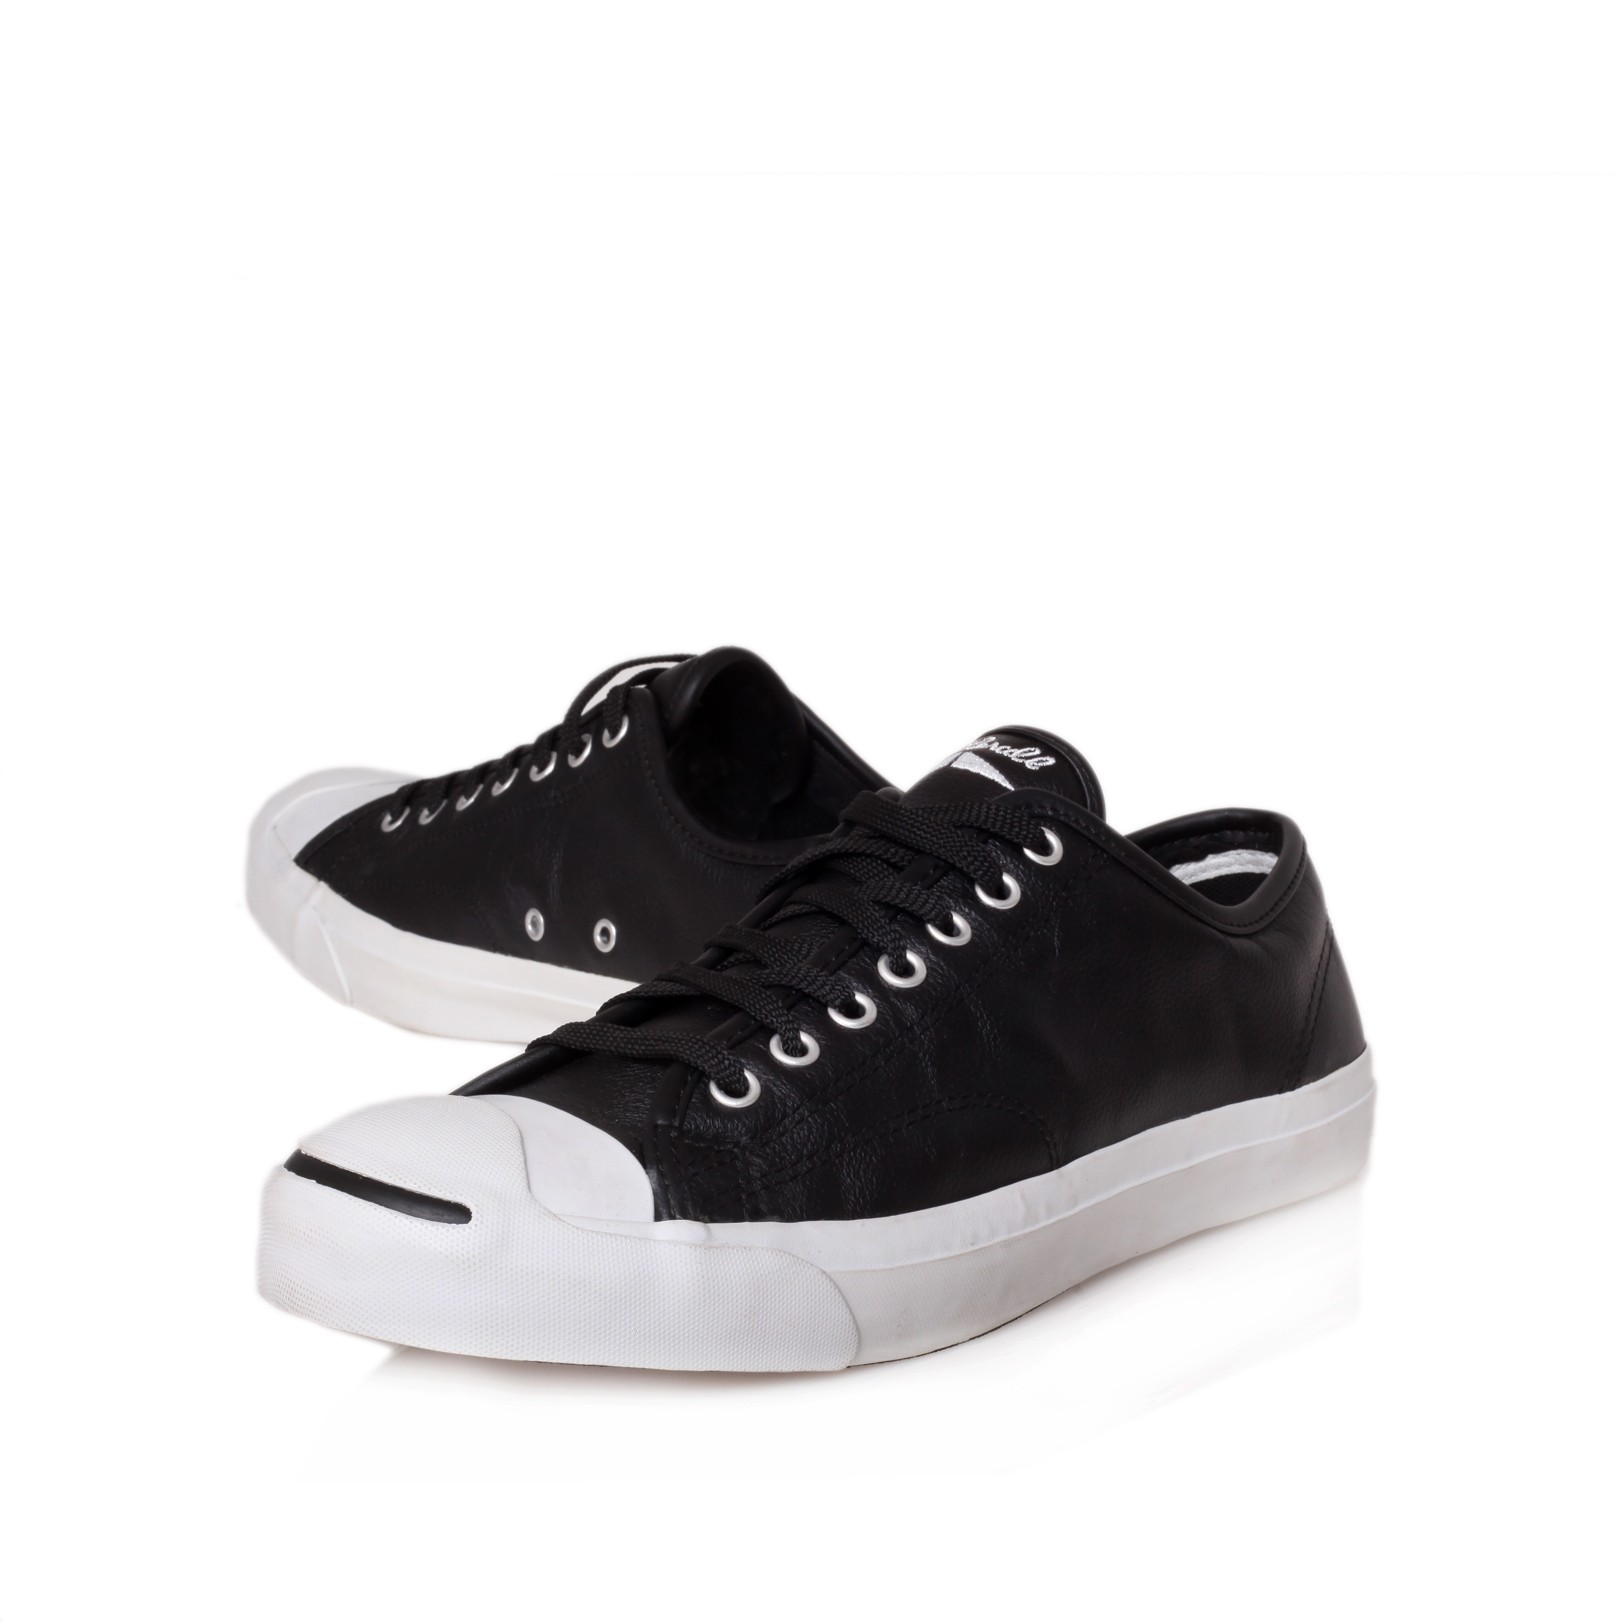 Black Jack Purcell Shoes